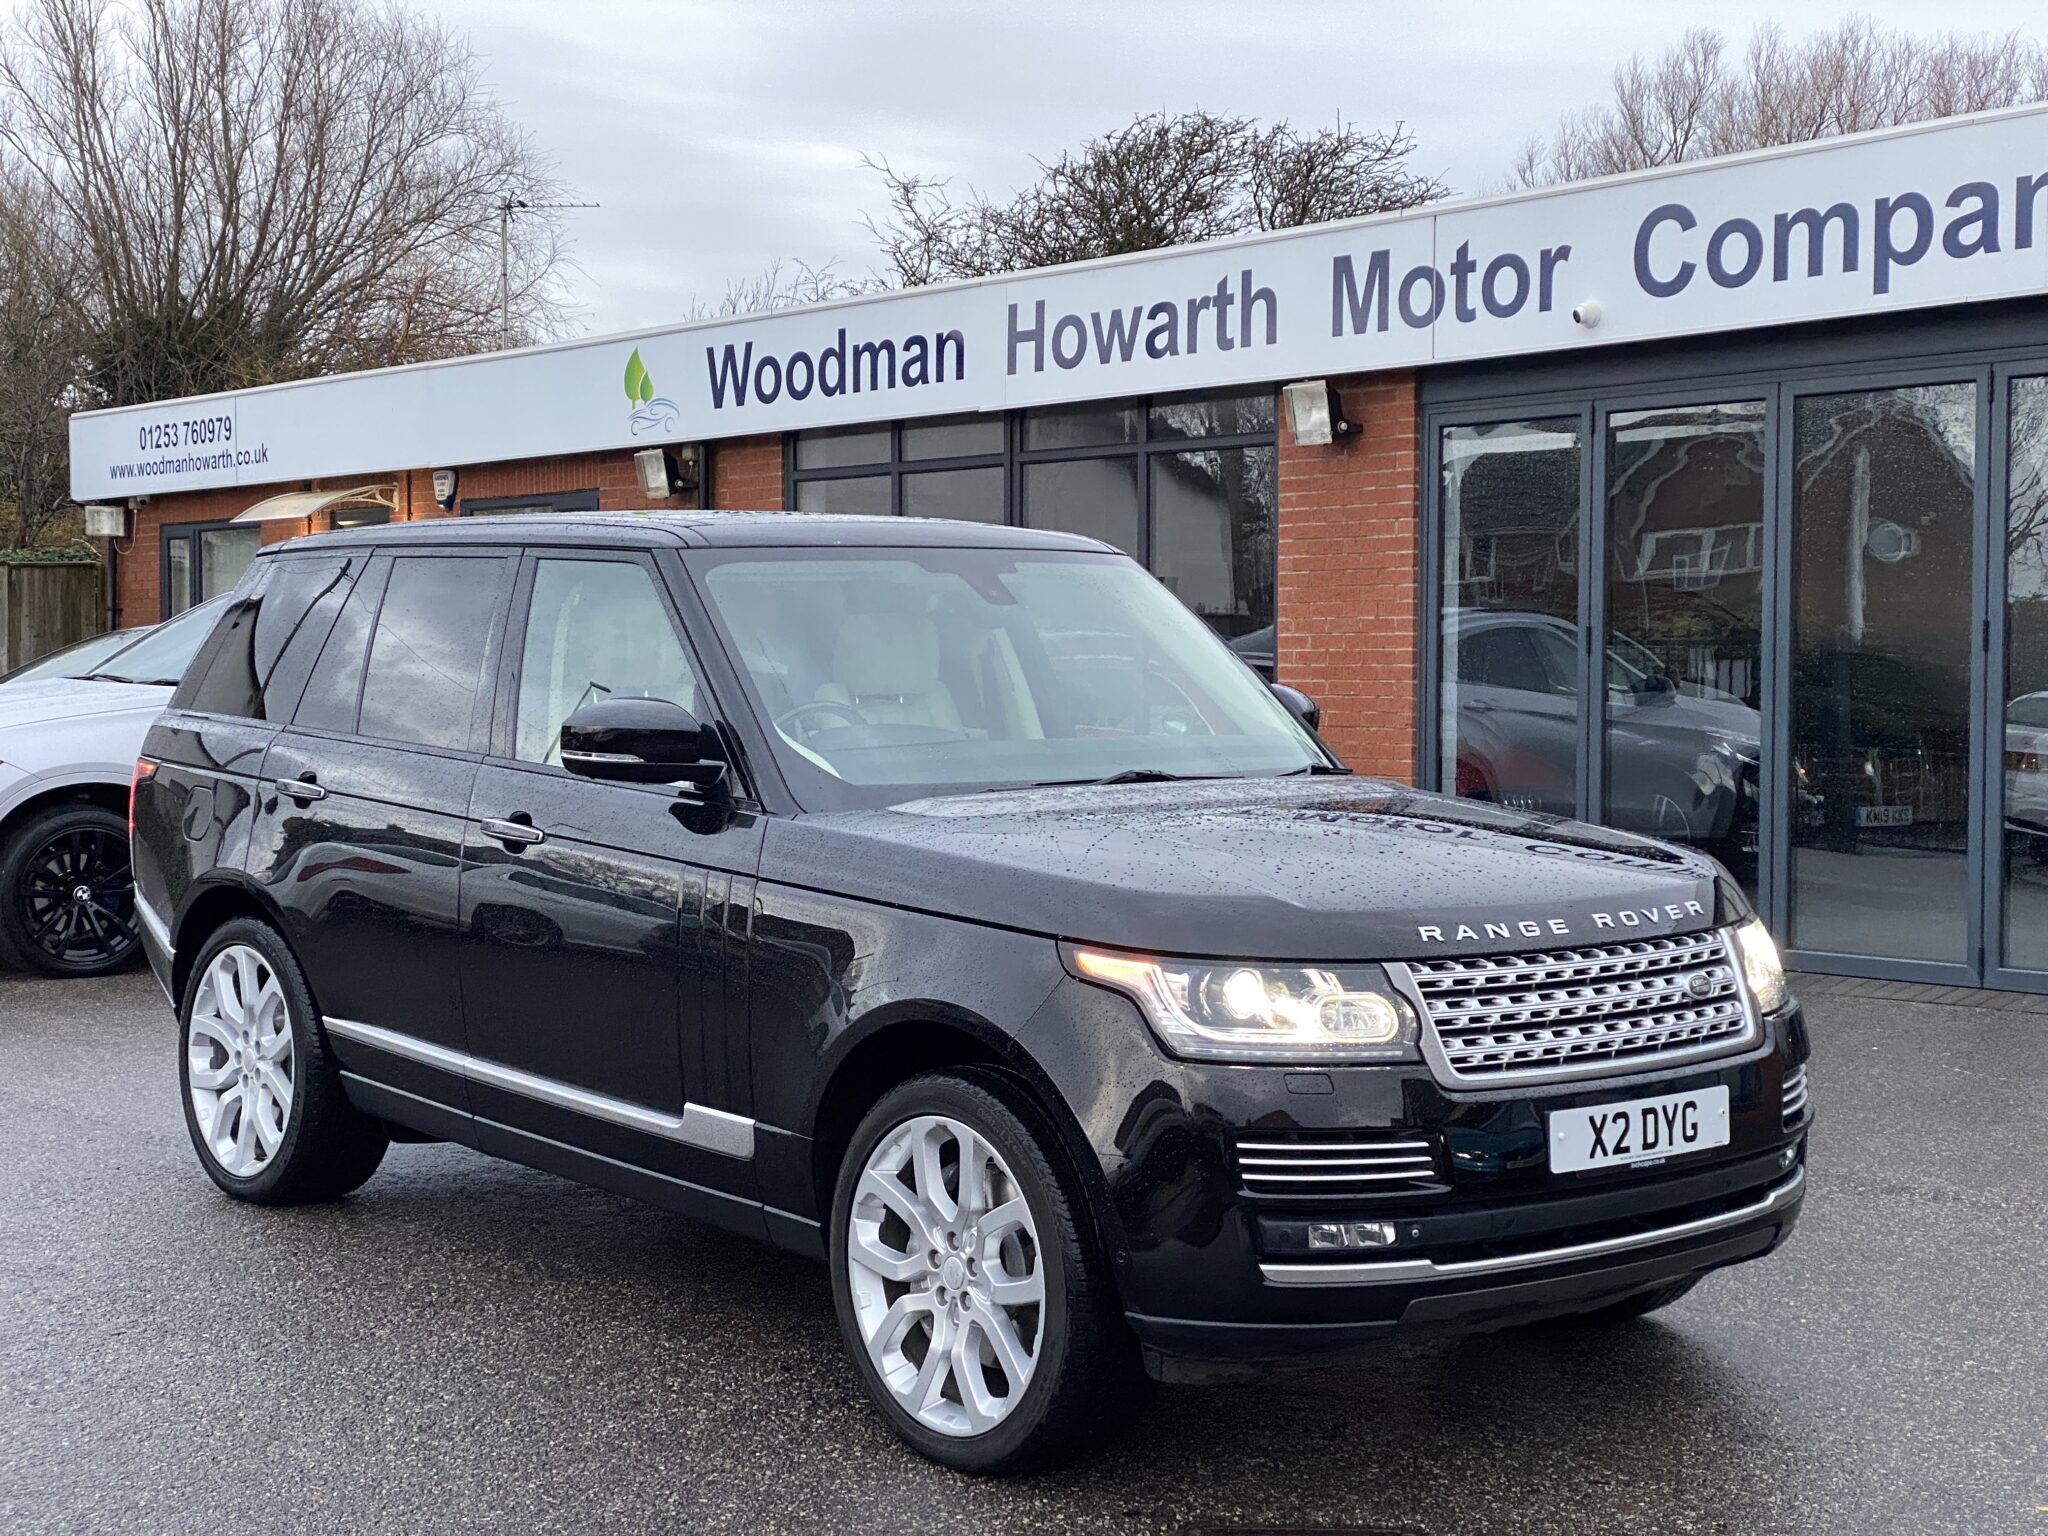 2013 63 RANGE ROVER AUTOBIOGRAPHY 5.0 V8 SUPERCHARGED AUTO Only 49K Mls FSH Huge Spec Stunning Colour Combination